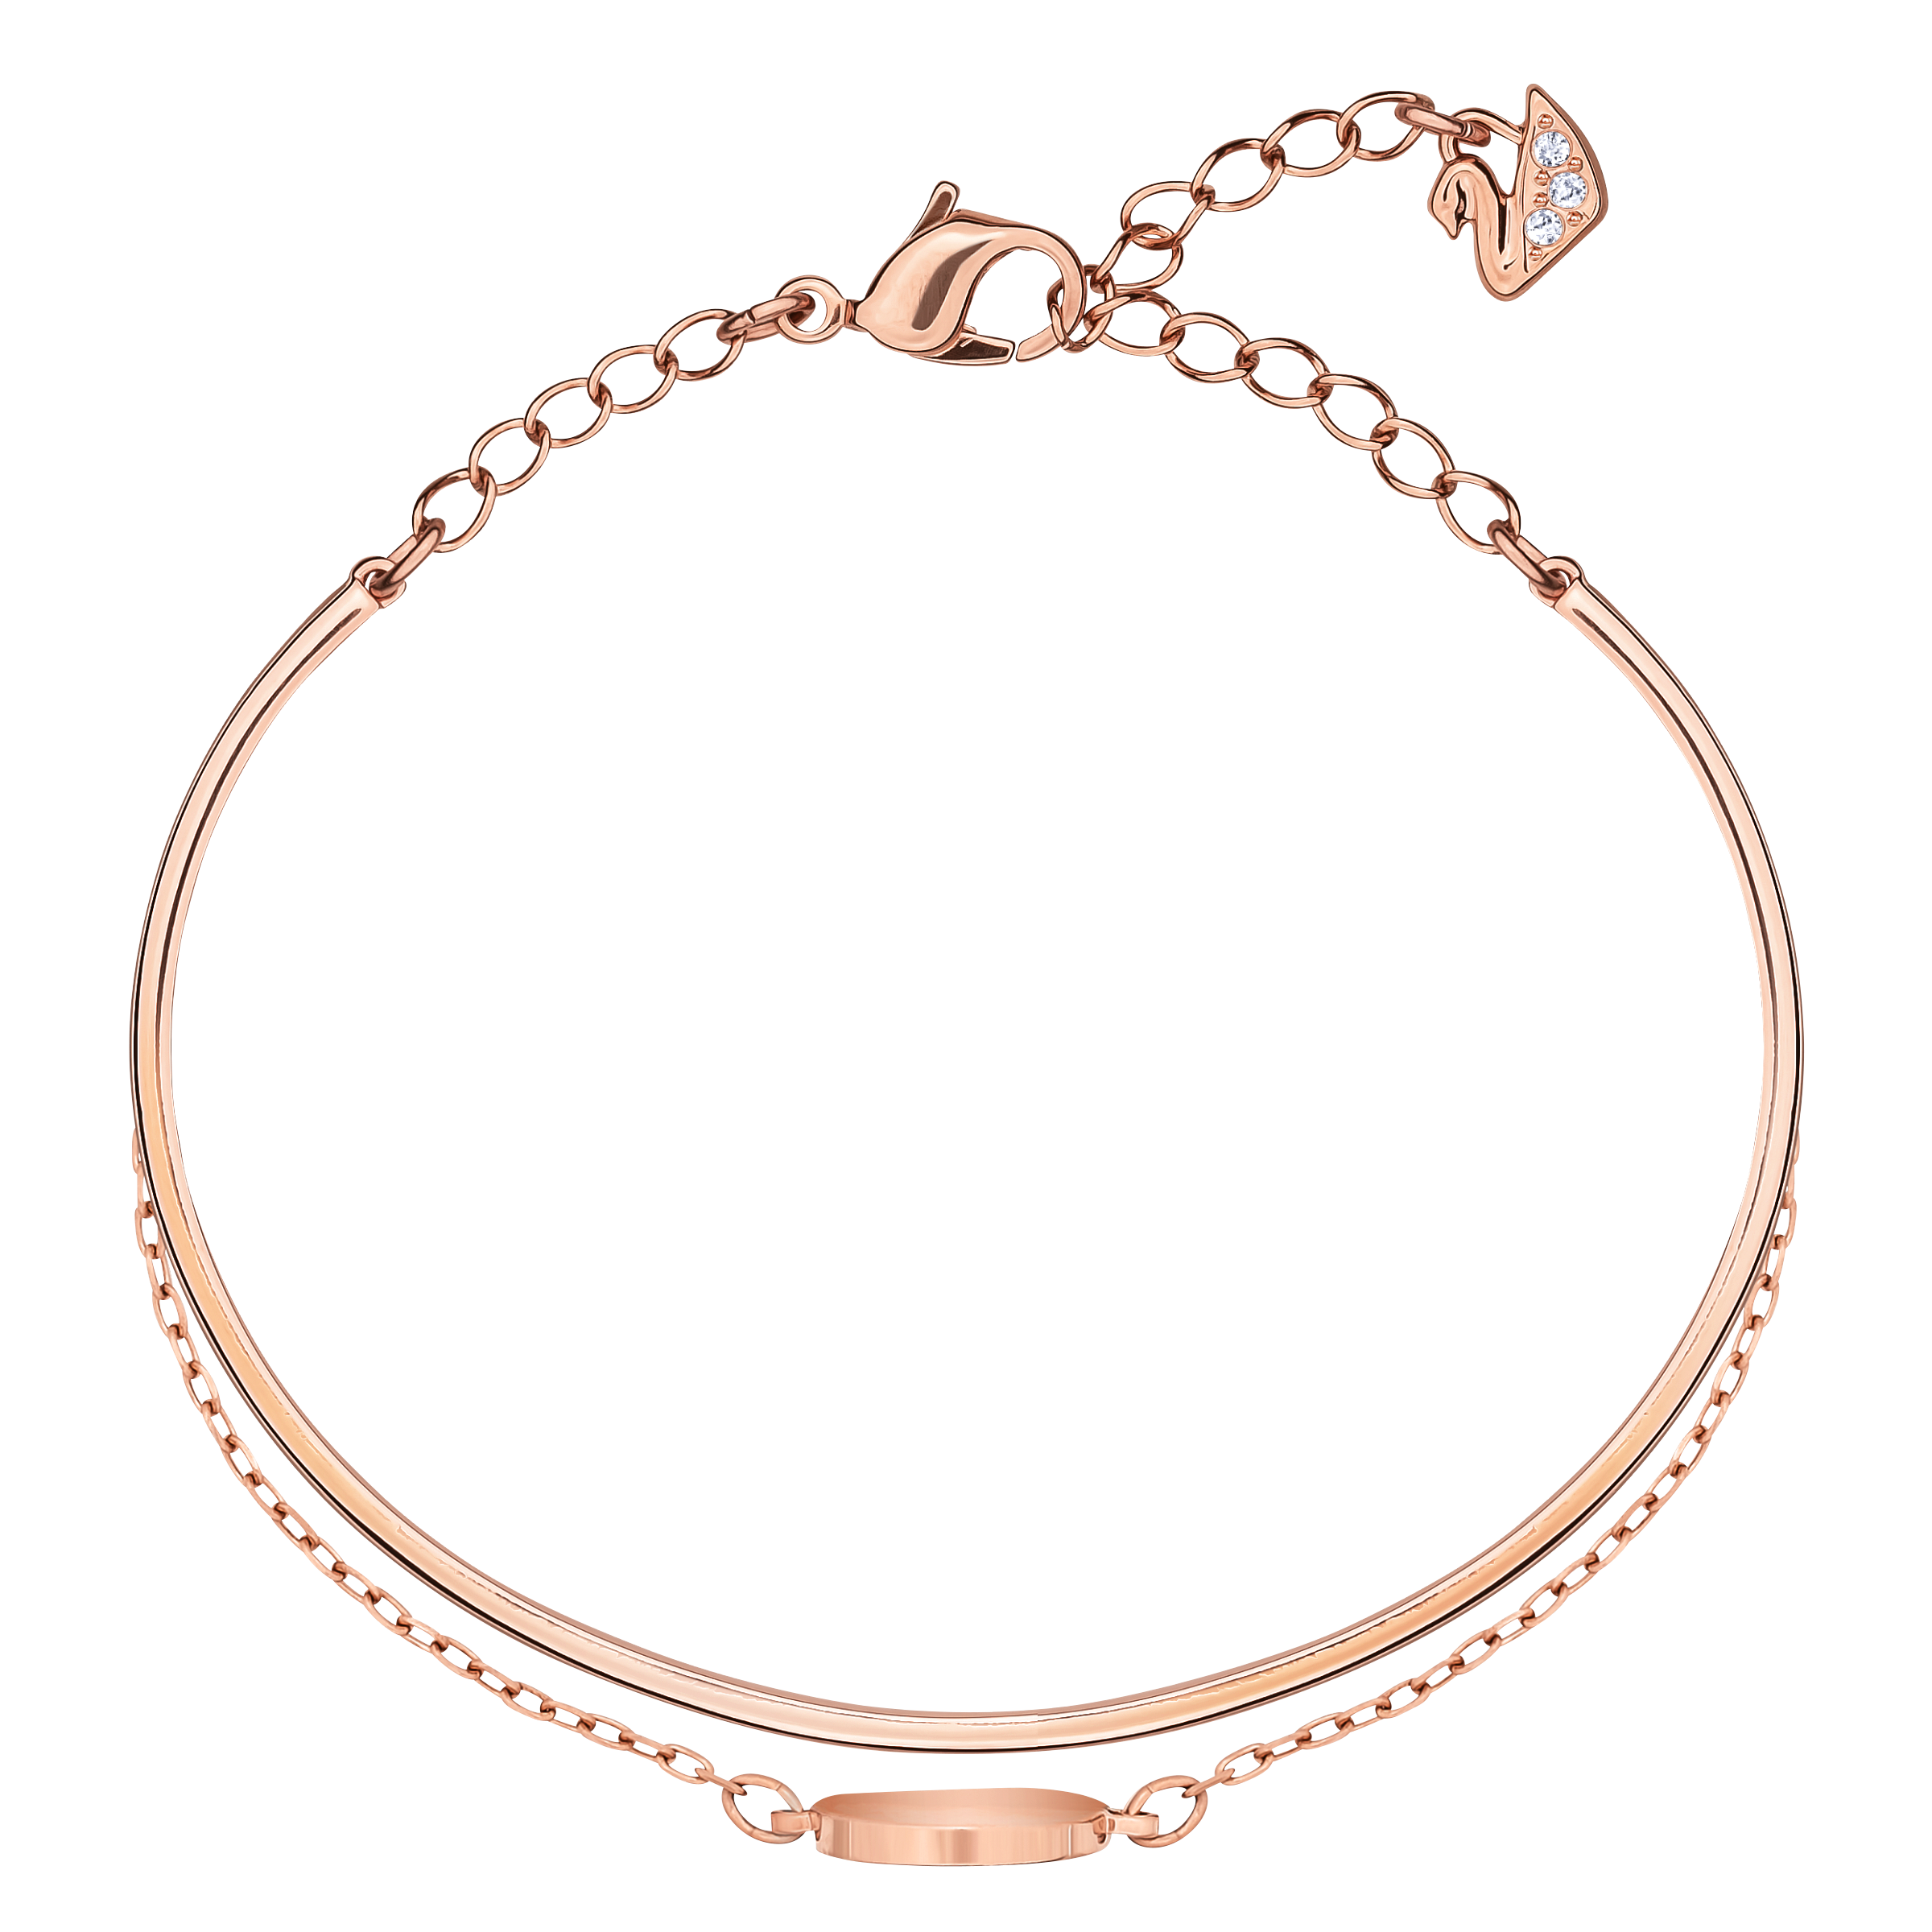 Ginger Bangle, White, Rose Gold Plated